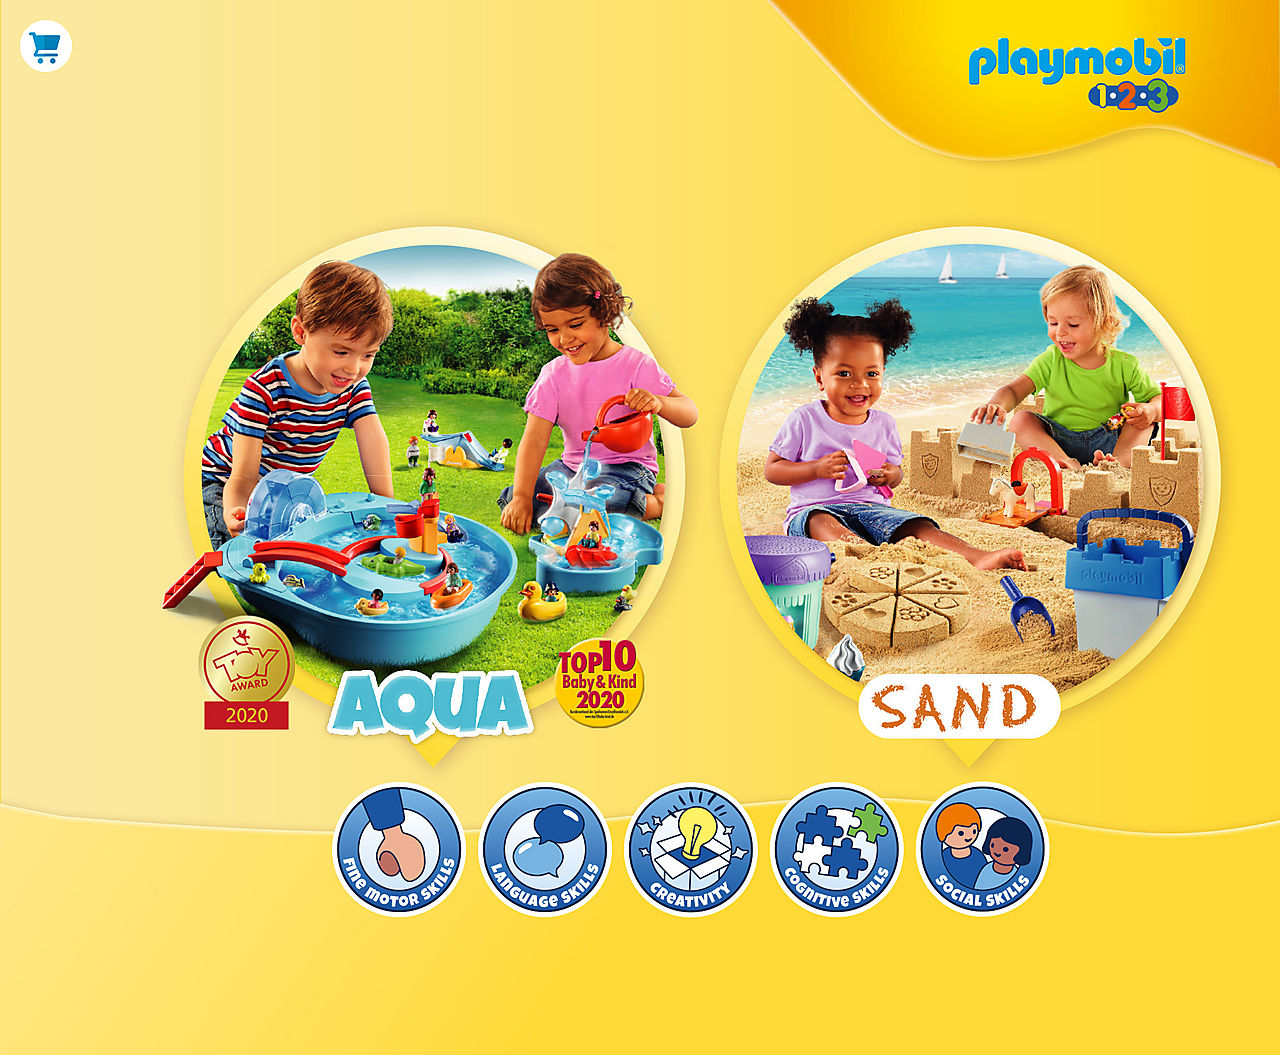 'find out about the new Playmobil Aqua and Sand award-winning playsets